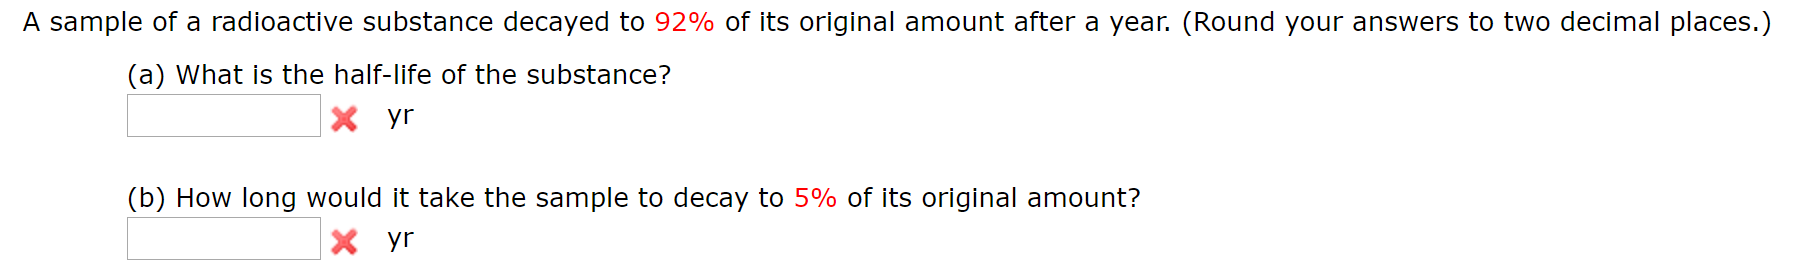 A sample of a radioactive substance decayed to 92% of its original amount after a year. (Round your answers to two decimal places.) (a) What is the half-life of the substance? Xyr (b) How long would it take the sample to decay to 5% of its original amount? Xyr